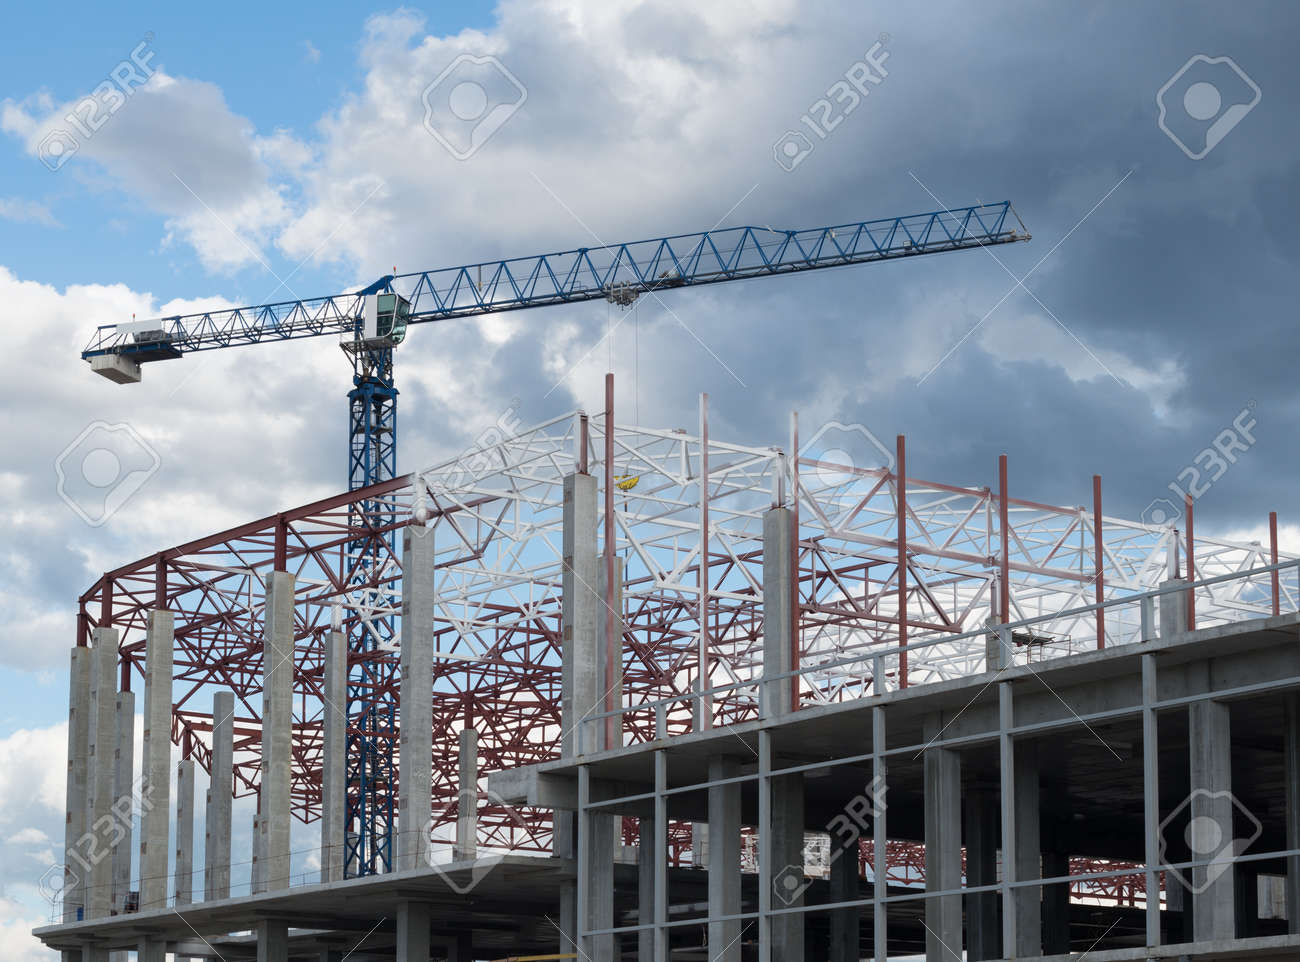 construction site framework of the new building and tower crane